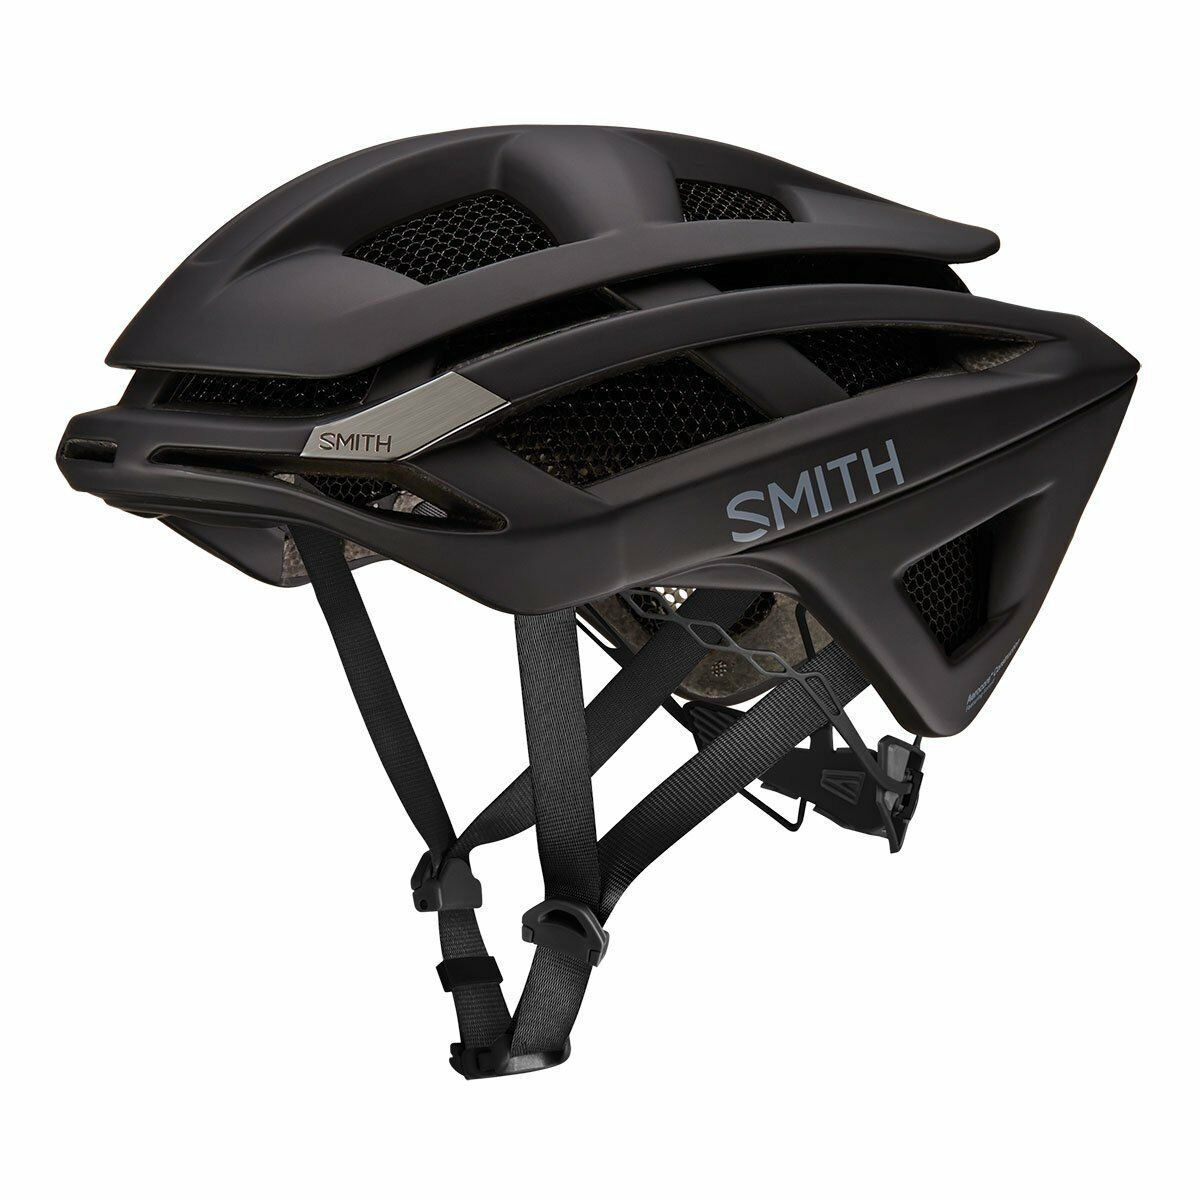 Smith Optics Overdeake Overdeake Overdeake MIPS Bike Off-Road Cycling Helmets, Many Coloreeees Dimensiones, NEW a23fea